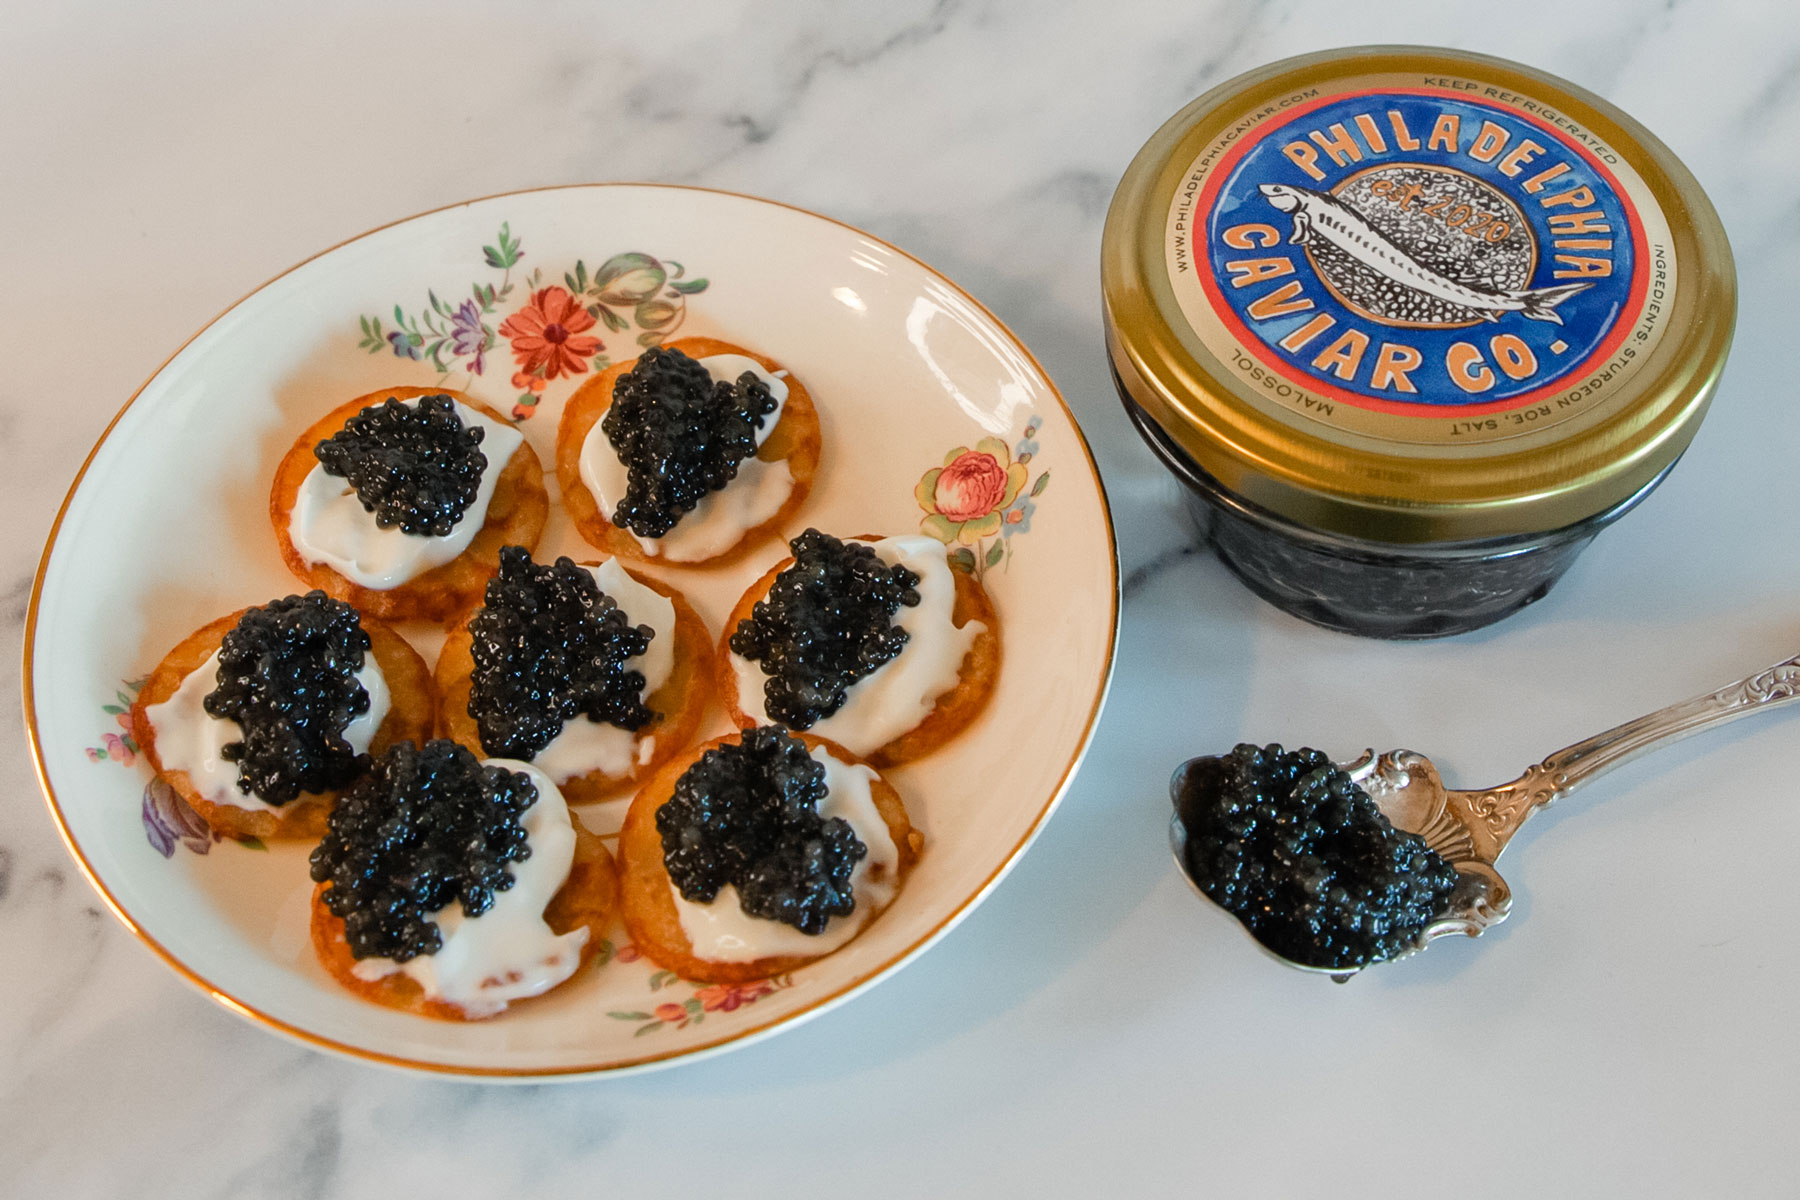 A plate of blinis topped with black caviar.